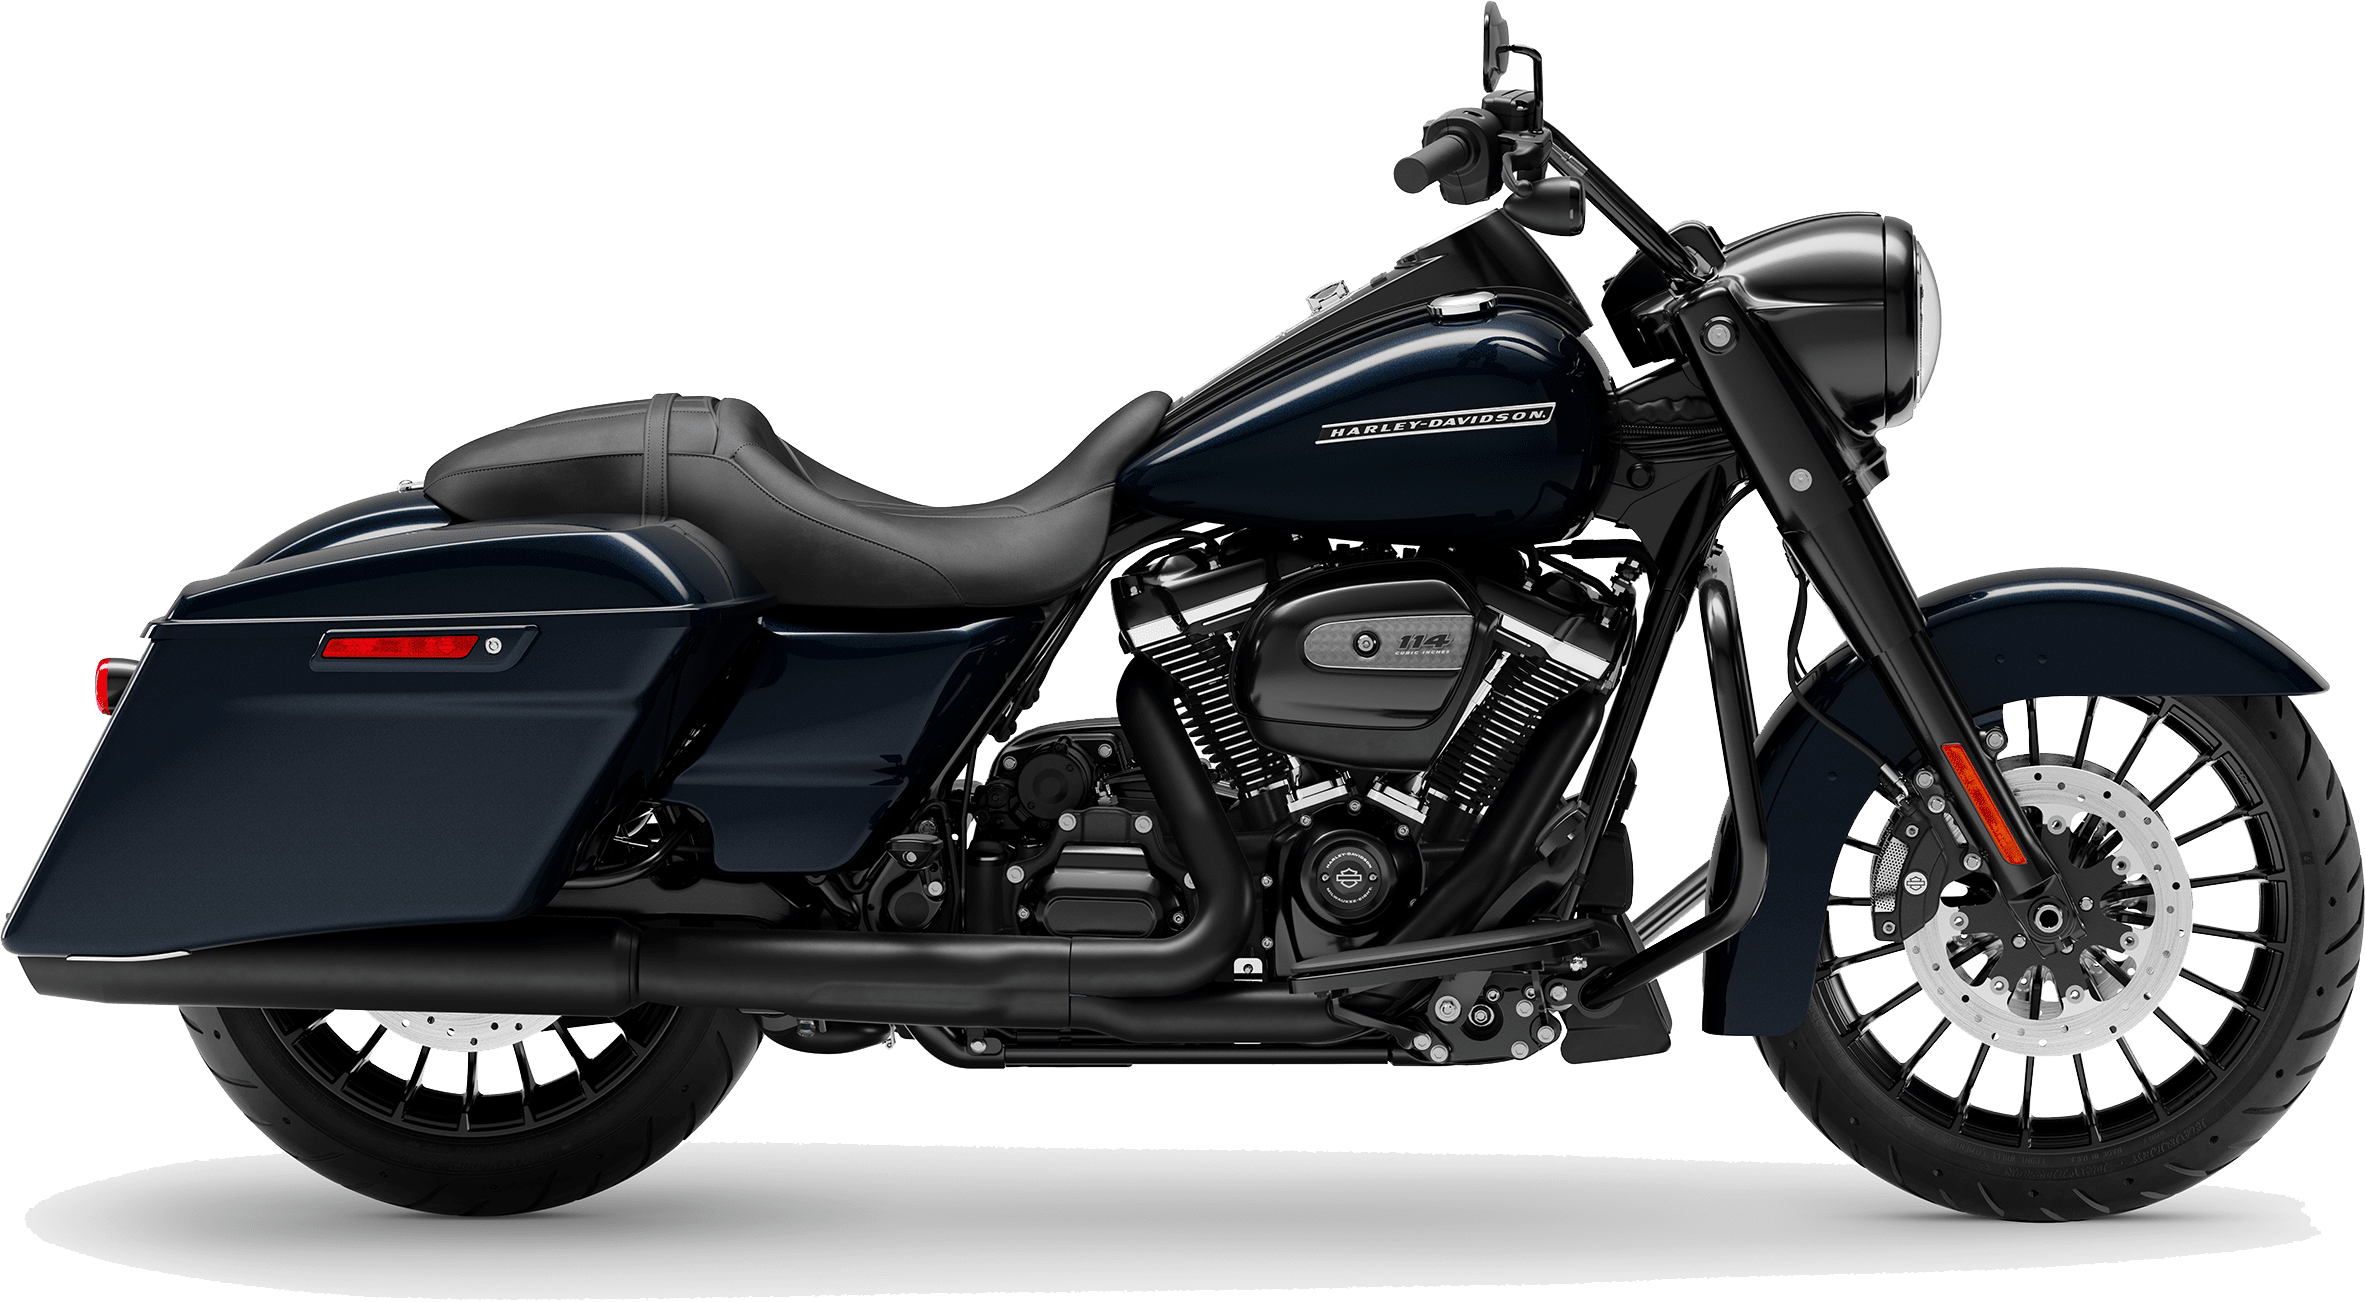 2019 Harley-Davidson H-D Touring Road King Special Midnight Blue